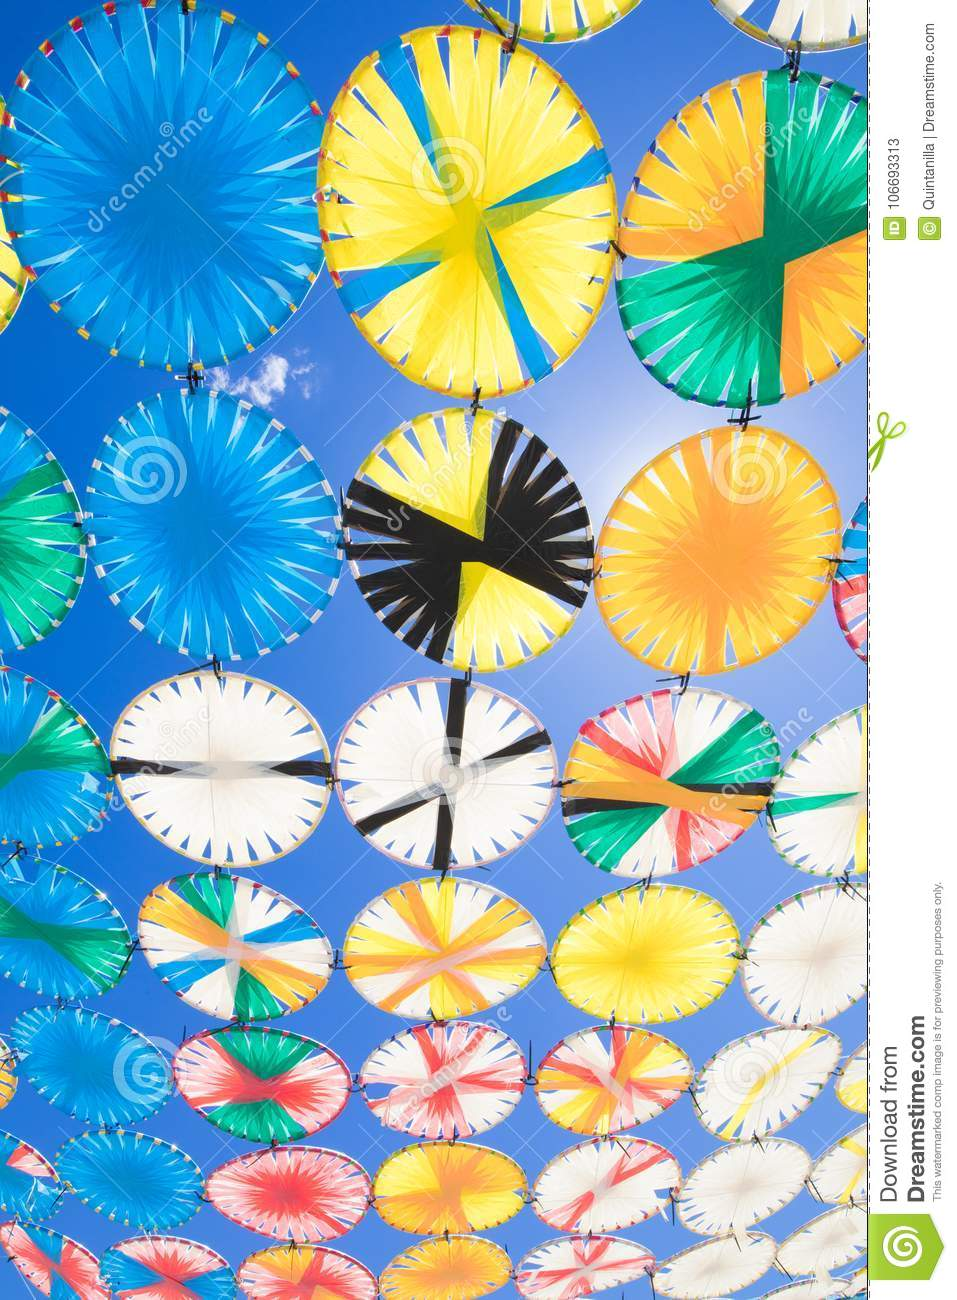 Sunshade multicolored circles row in blue sky vertical